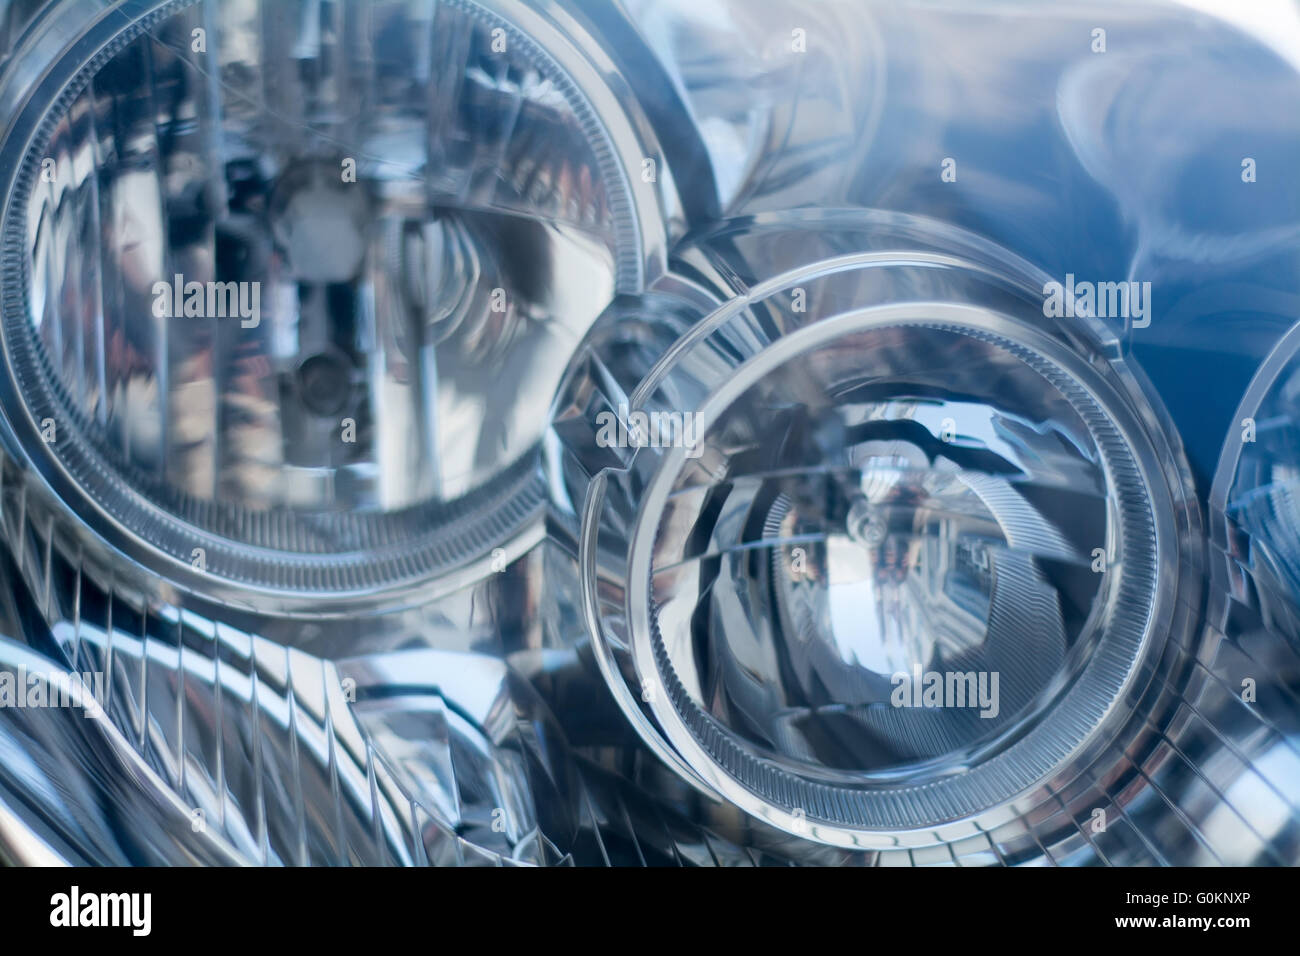 Silver Blue Technology Abstract Background From A Blurred Close Up Of Car Headlight